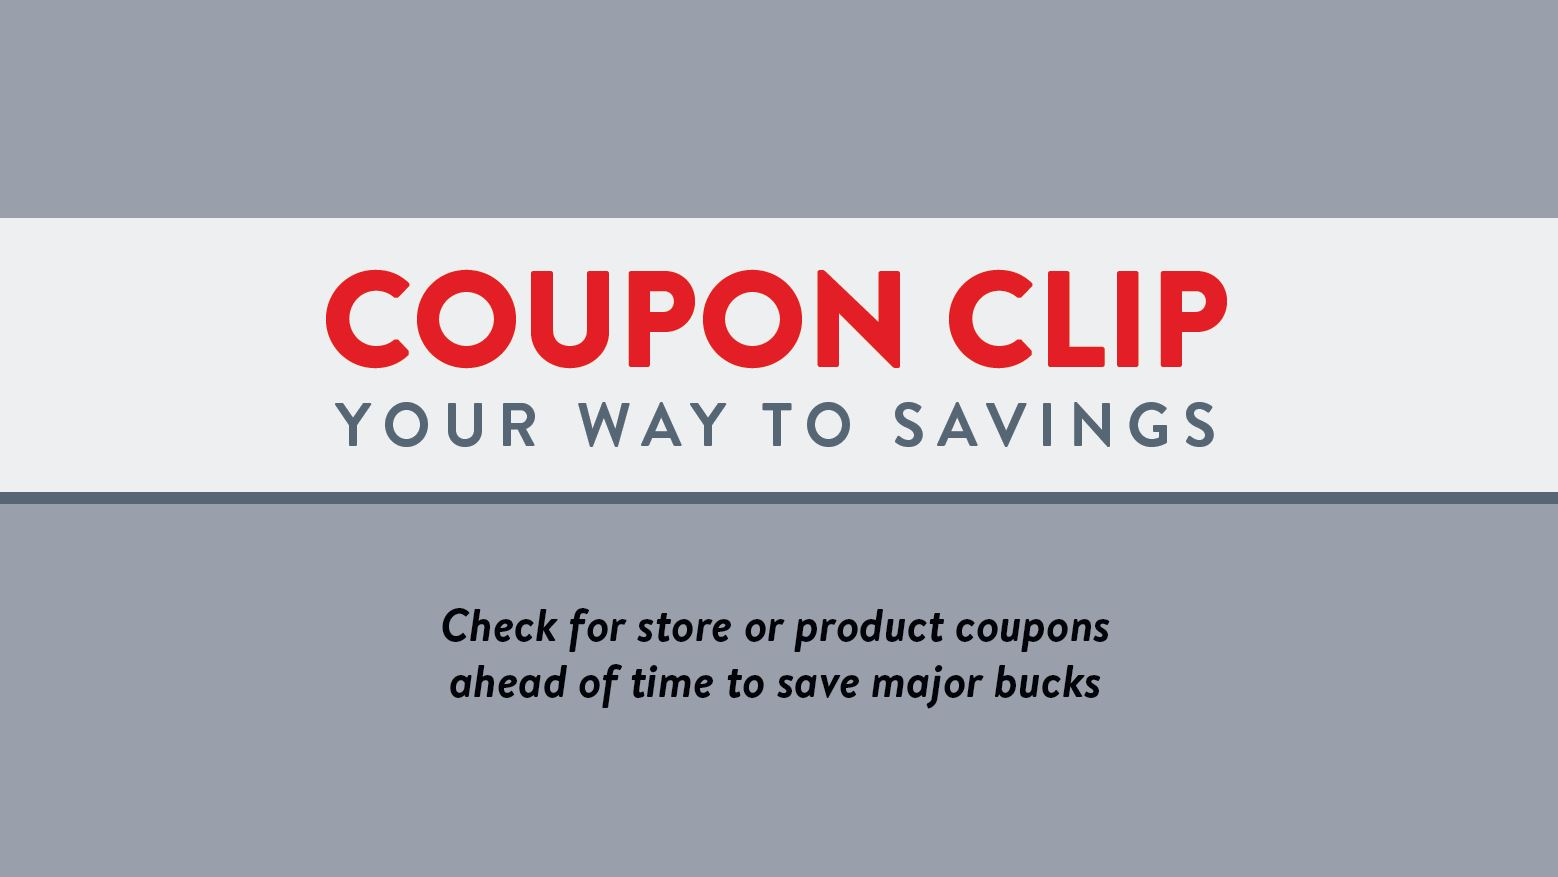 Coupon clip your way to saavings. Check for store or product coupons ahead of time to save major bucks.